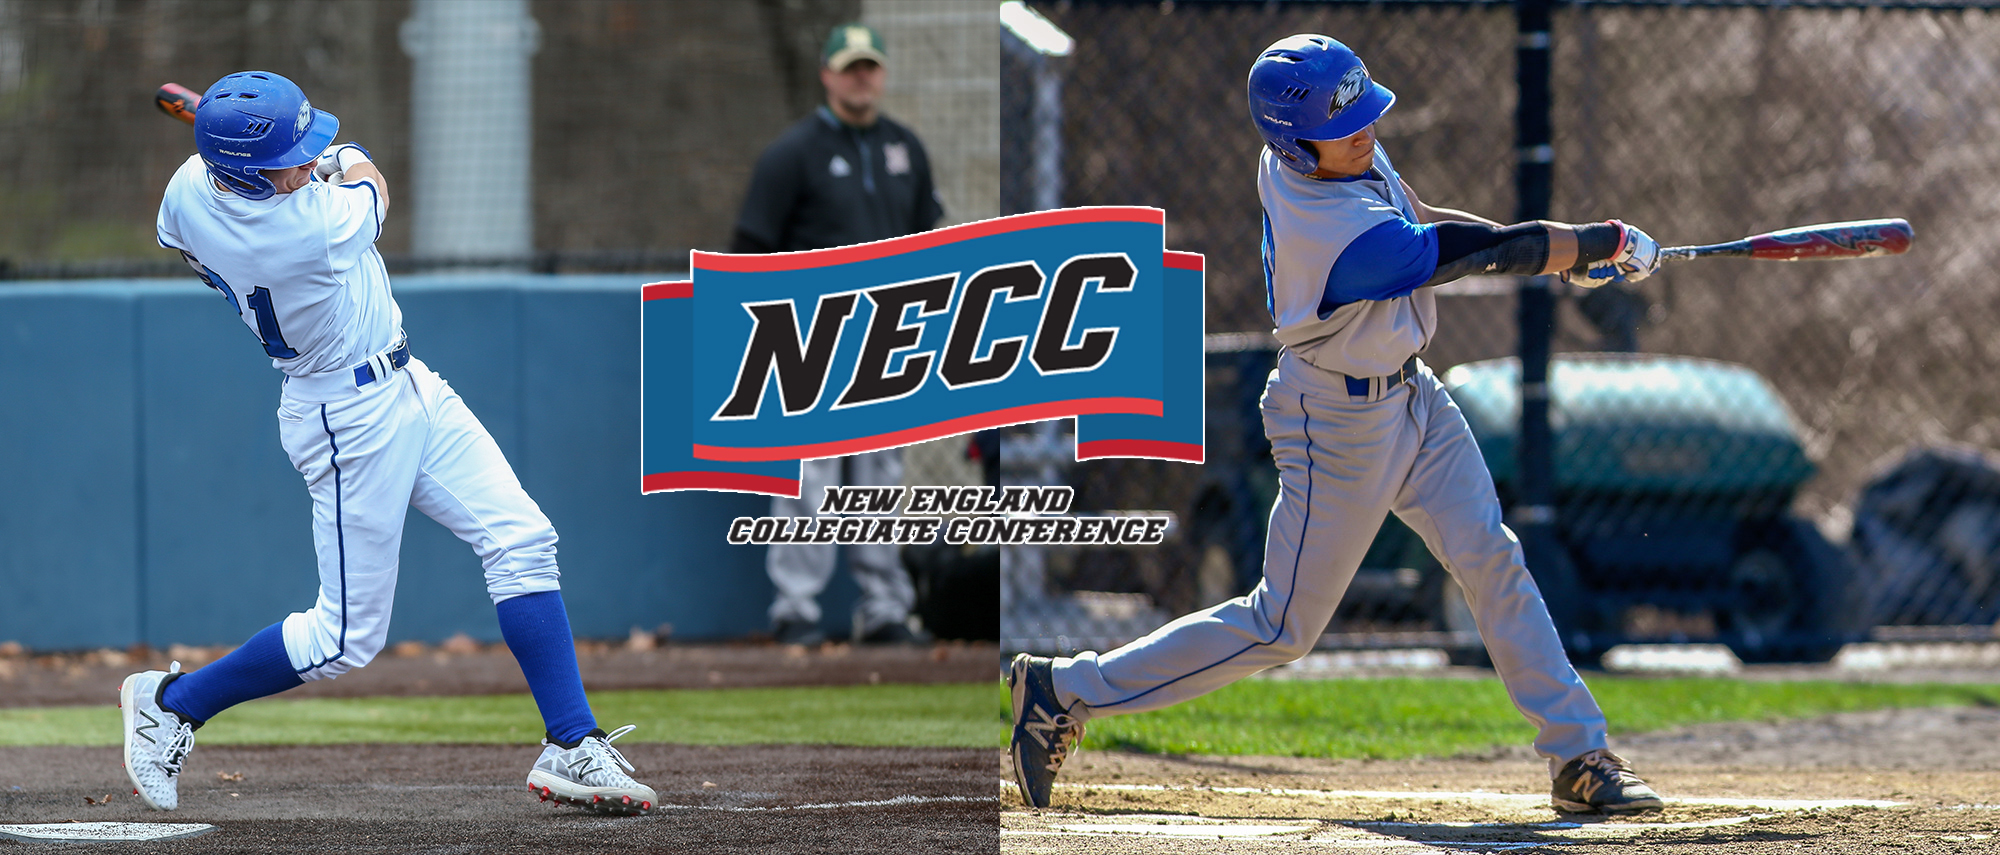 Testa and Negron All-Conference NECC